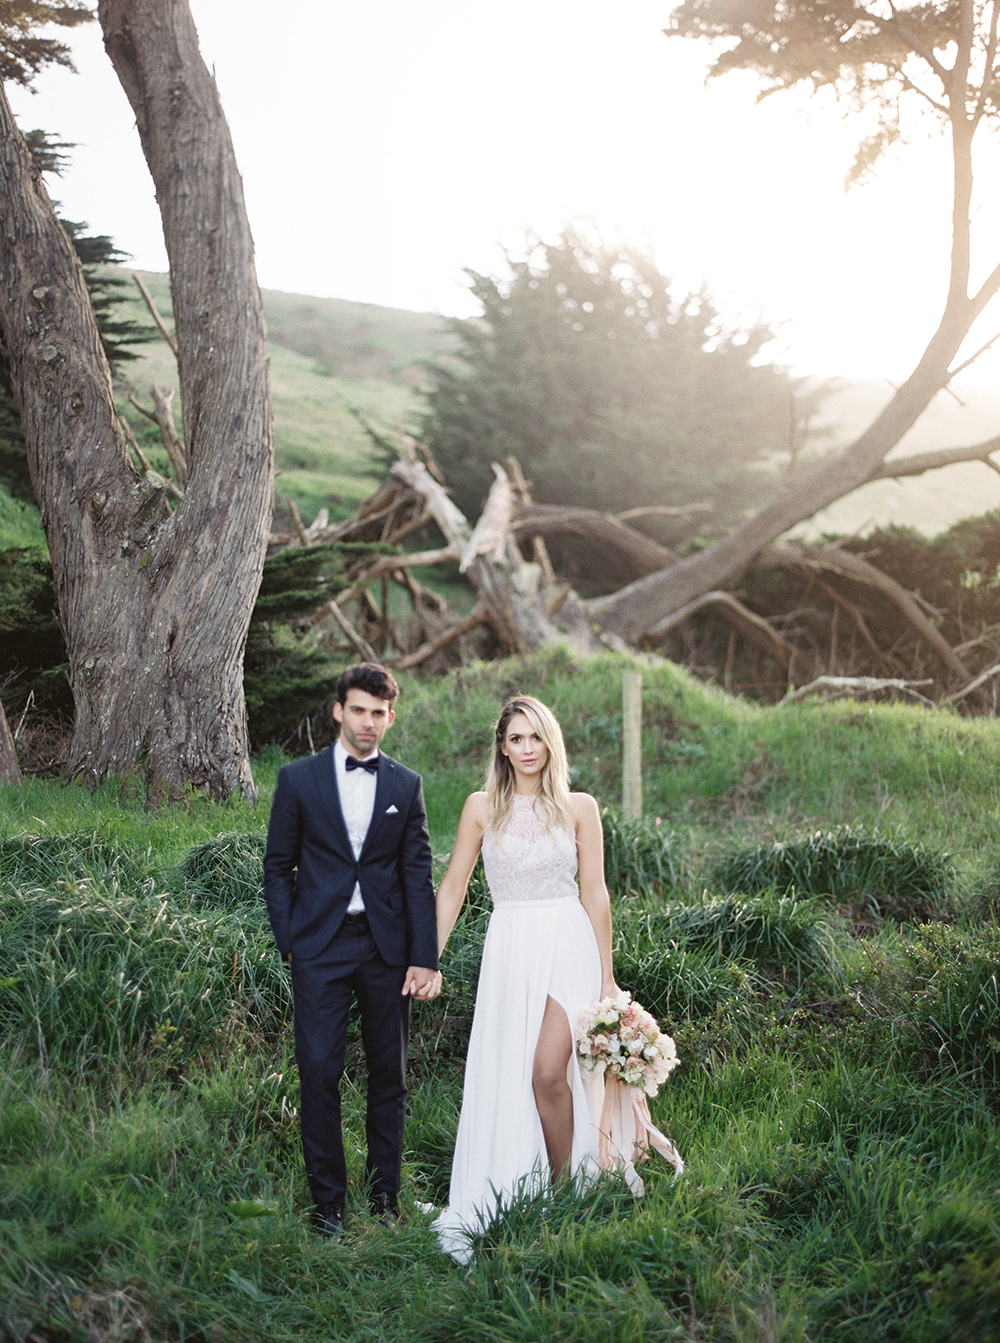 Romantic Coastal California Wedding Inspiration - photo by Tyler Rye Photography http://ruffledblog.com/romantic-coastal-california-wedding-inspiration